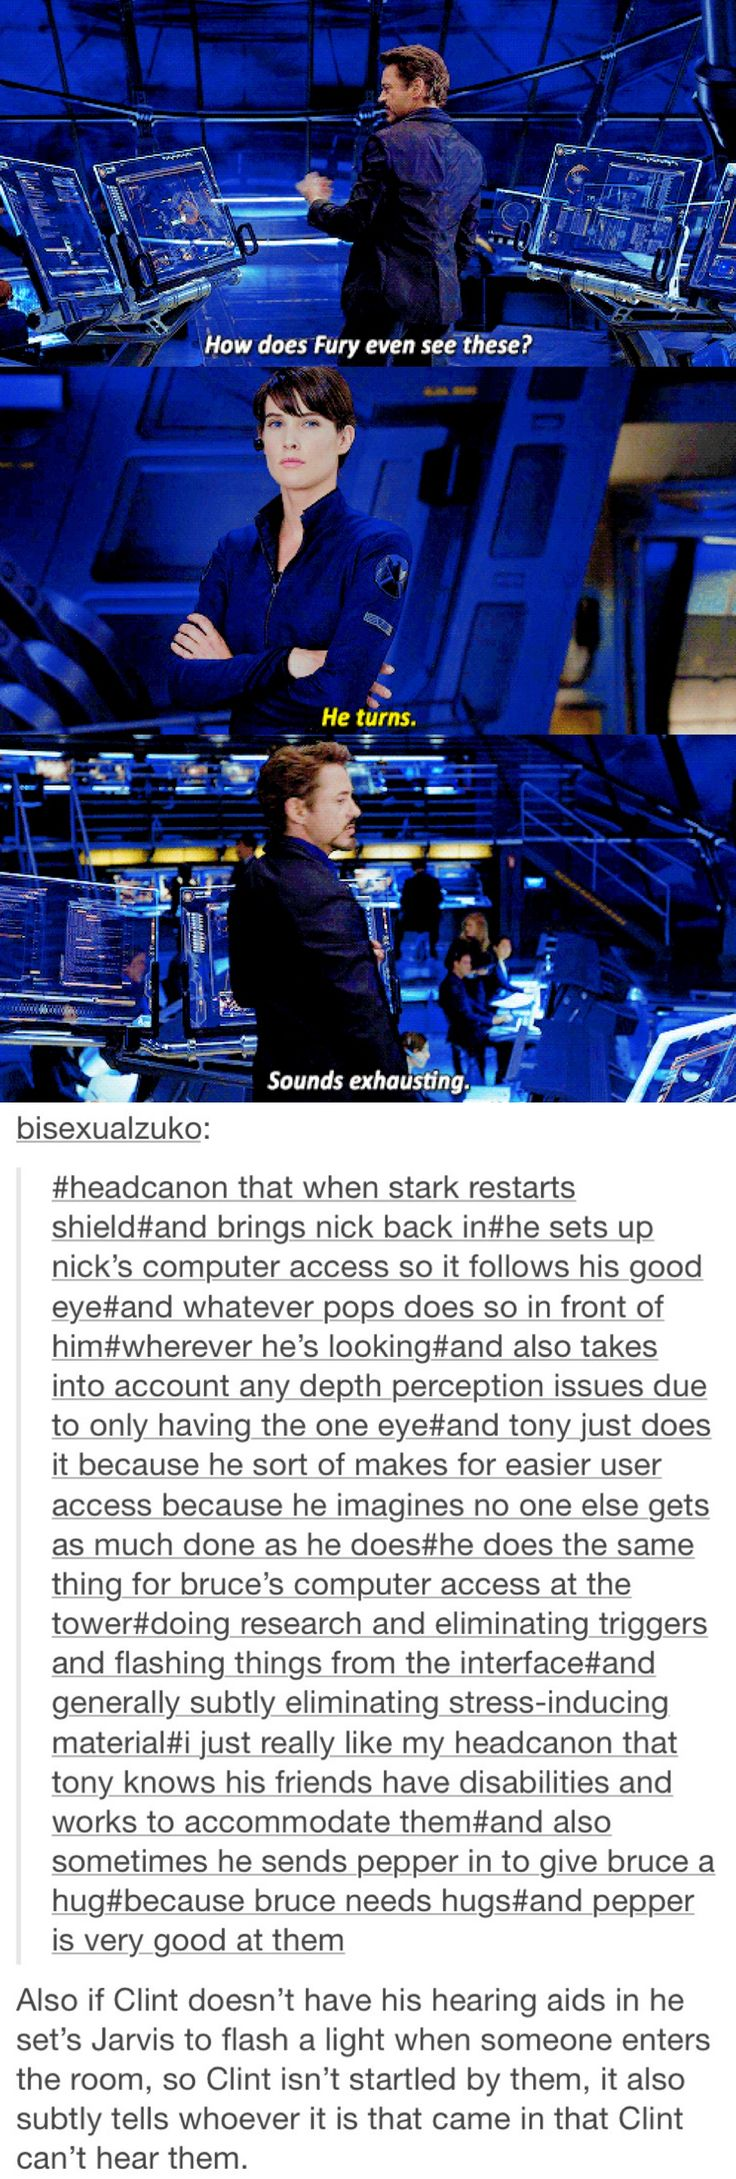 Headcannon that Tony uses his tech to help his friends with disabilities.